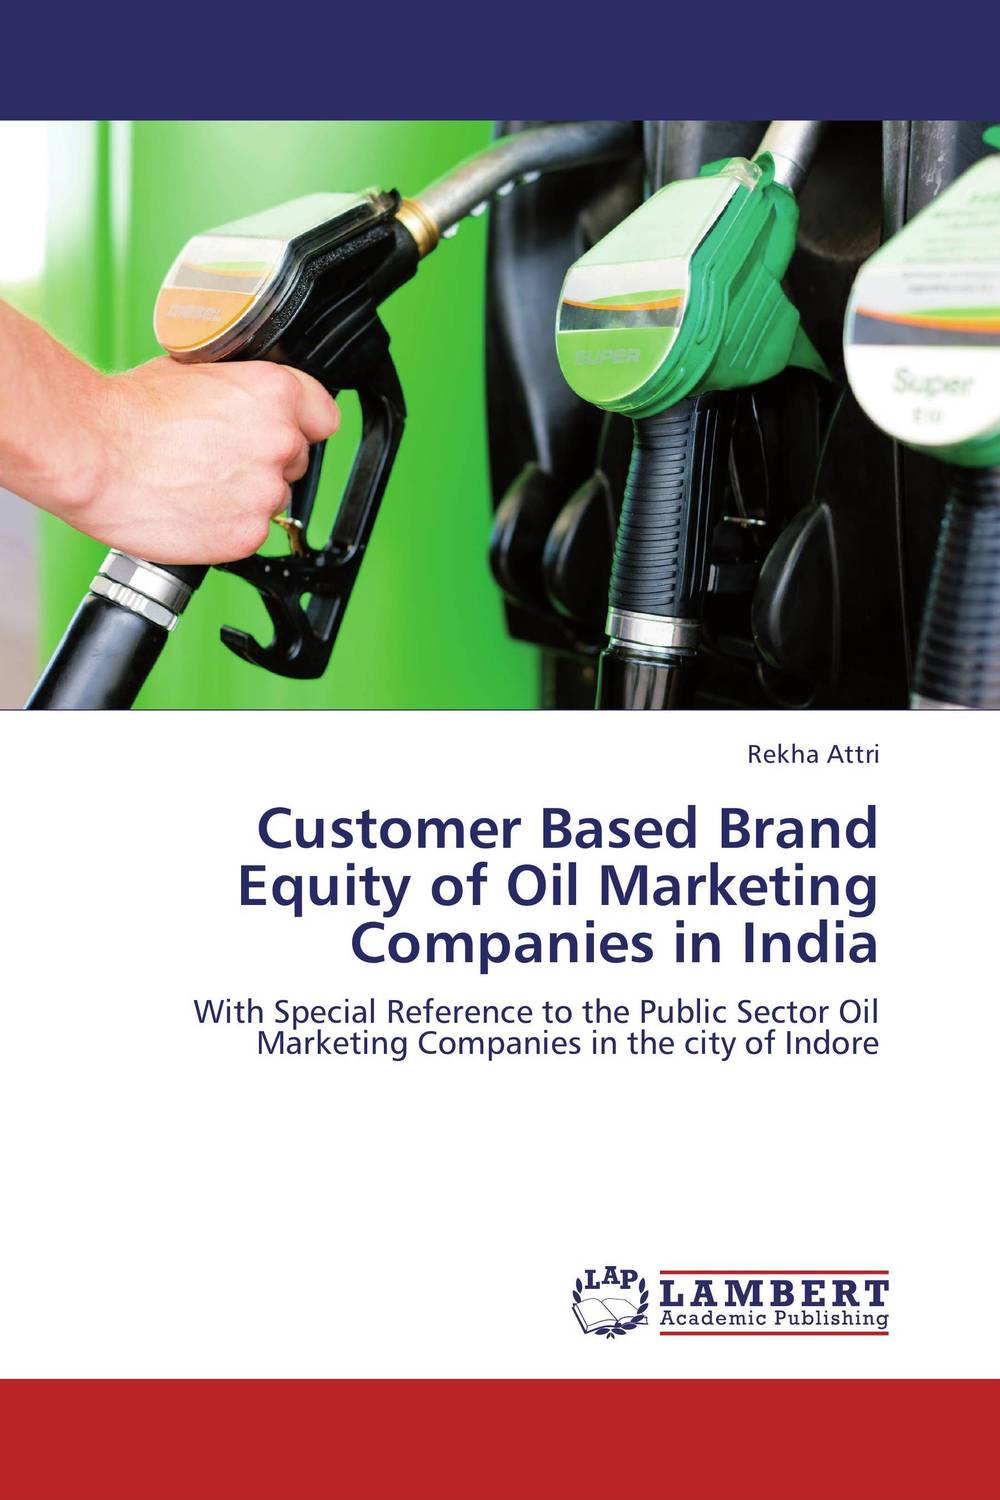 Customer Based Brand Equity of Oil Marketing Companies in India